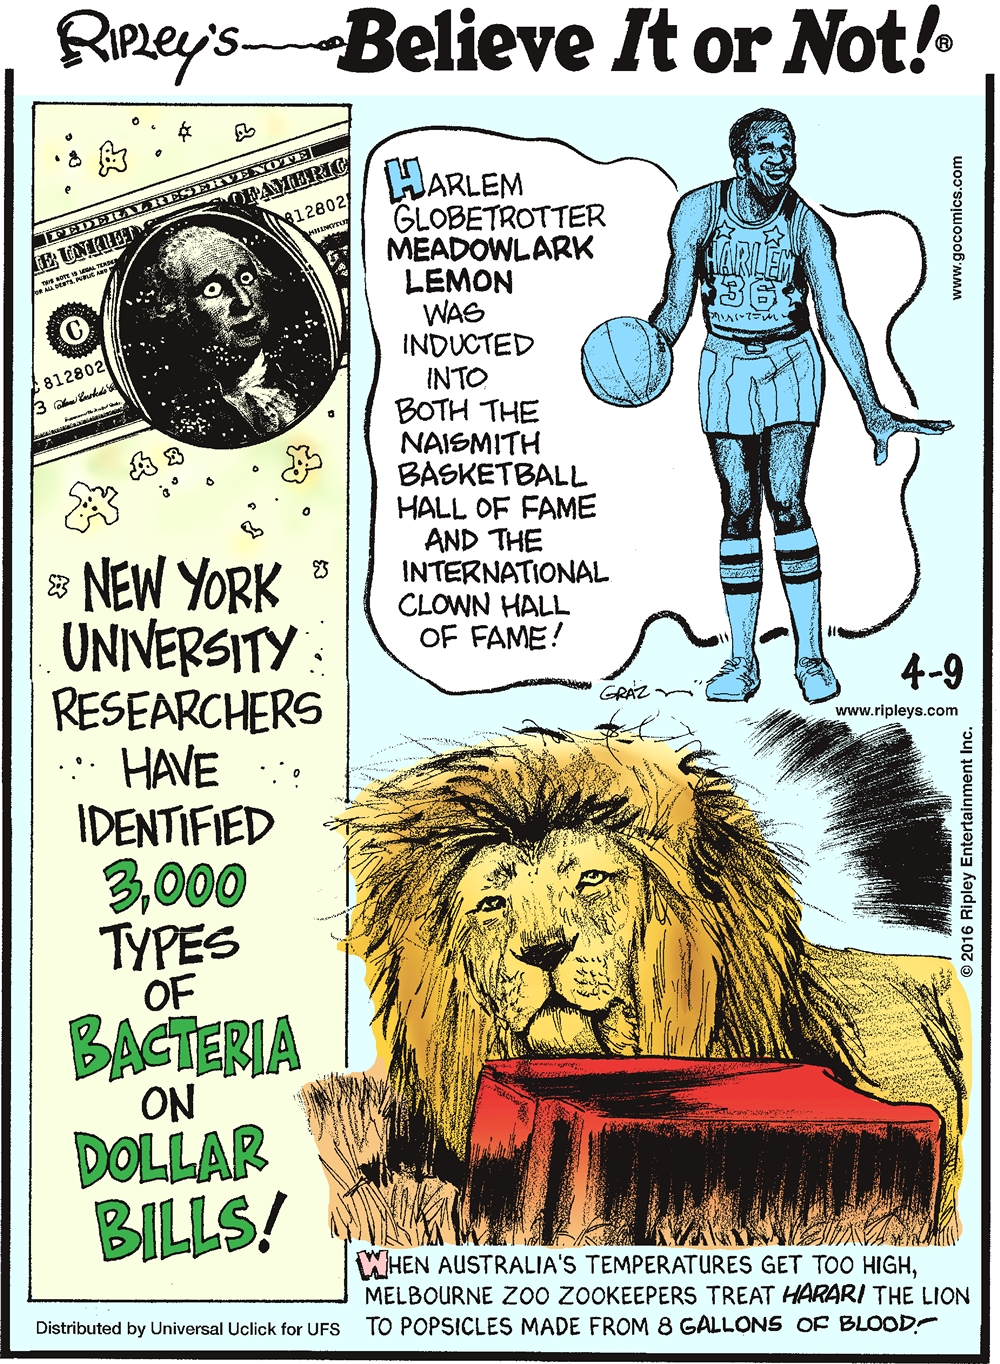 New York University researchers have identified 3,000 types of bacteria on dollar bills! -------------------- Harlem Globetrotter Meadowlark lemon was inducted into both the Naismith Basketball Hall of Fame and the International Clown Hall of Fame! -------------------- When Australia's temperatures get too high, Melbourne Zoo zookeepers treat Harari the lion to popsicles made from 8 gallons of blood!